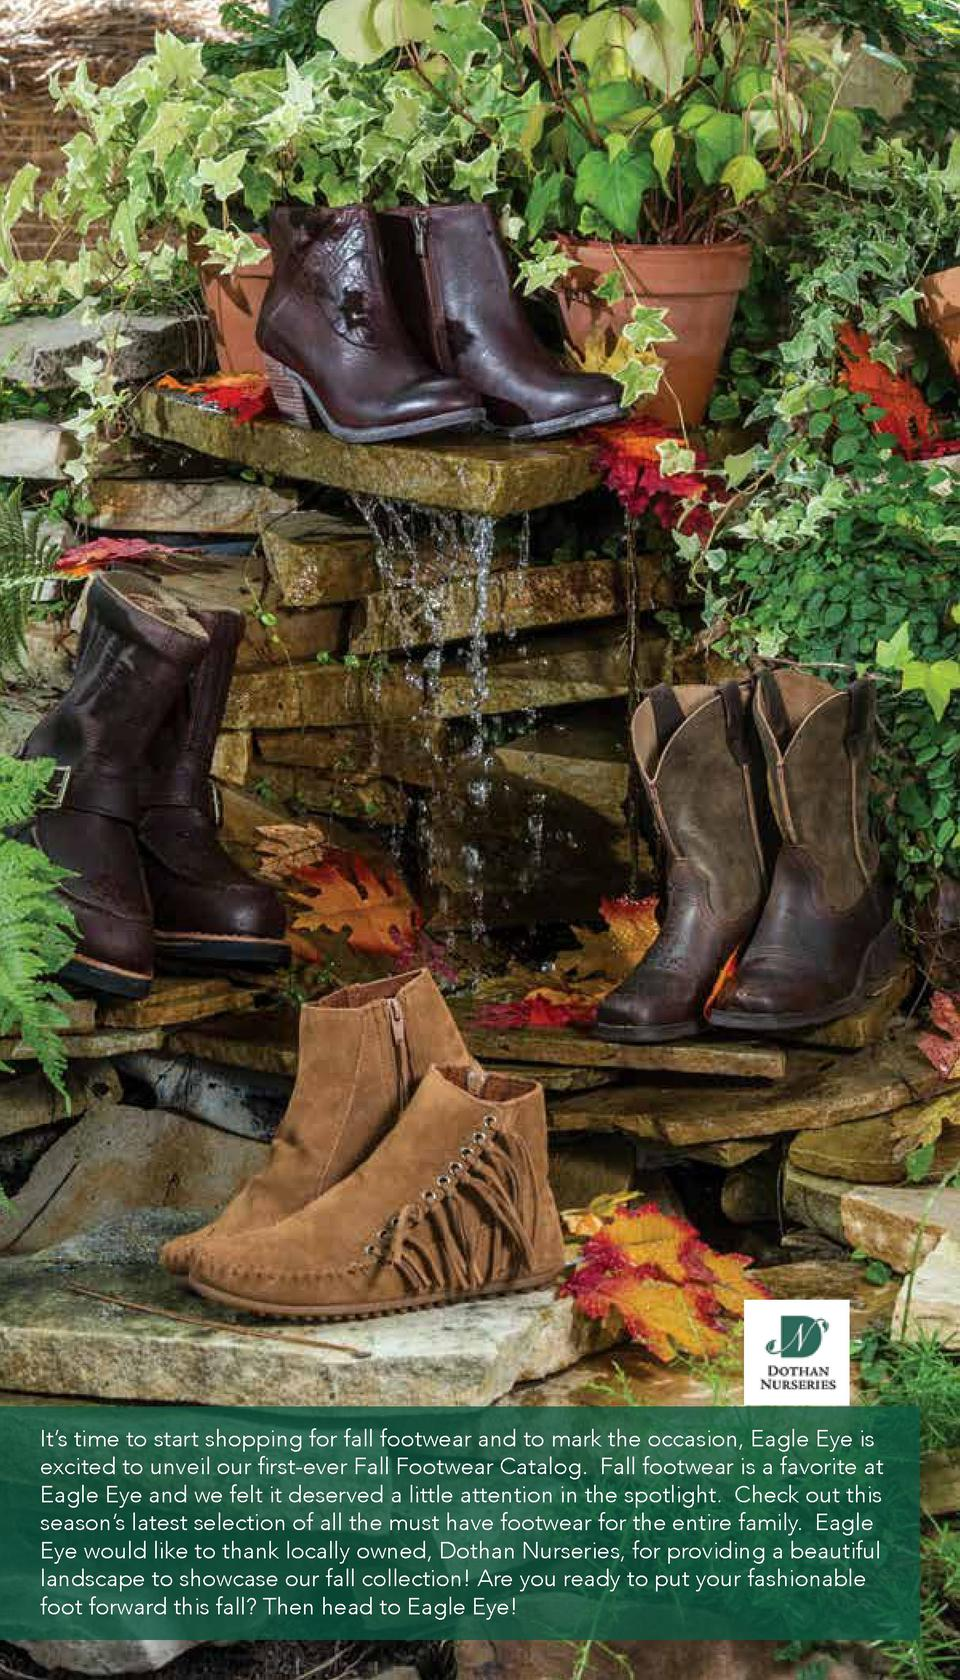 It   s time to start shopping for fall footwear and to mark the occasion, Eagle Eye is excited to unveil our first-ever Fa...